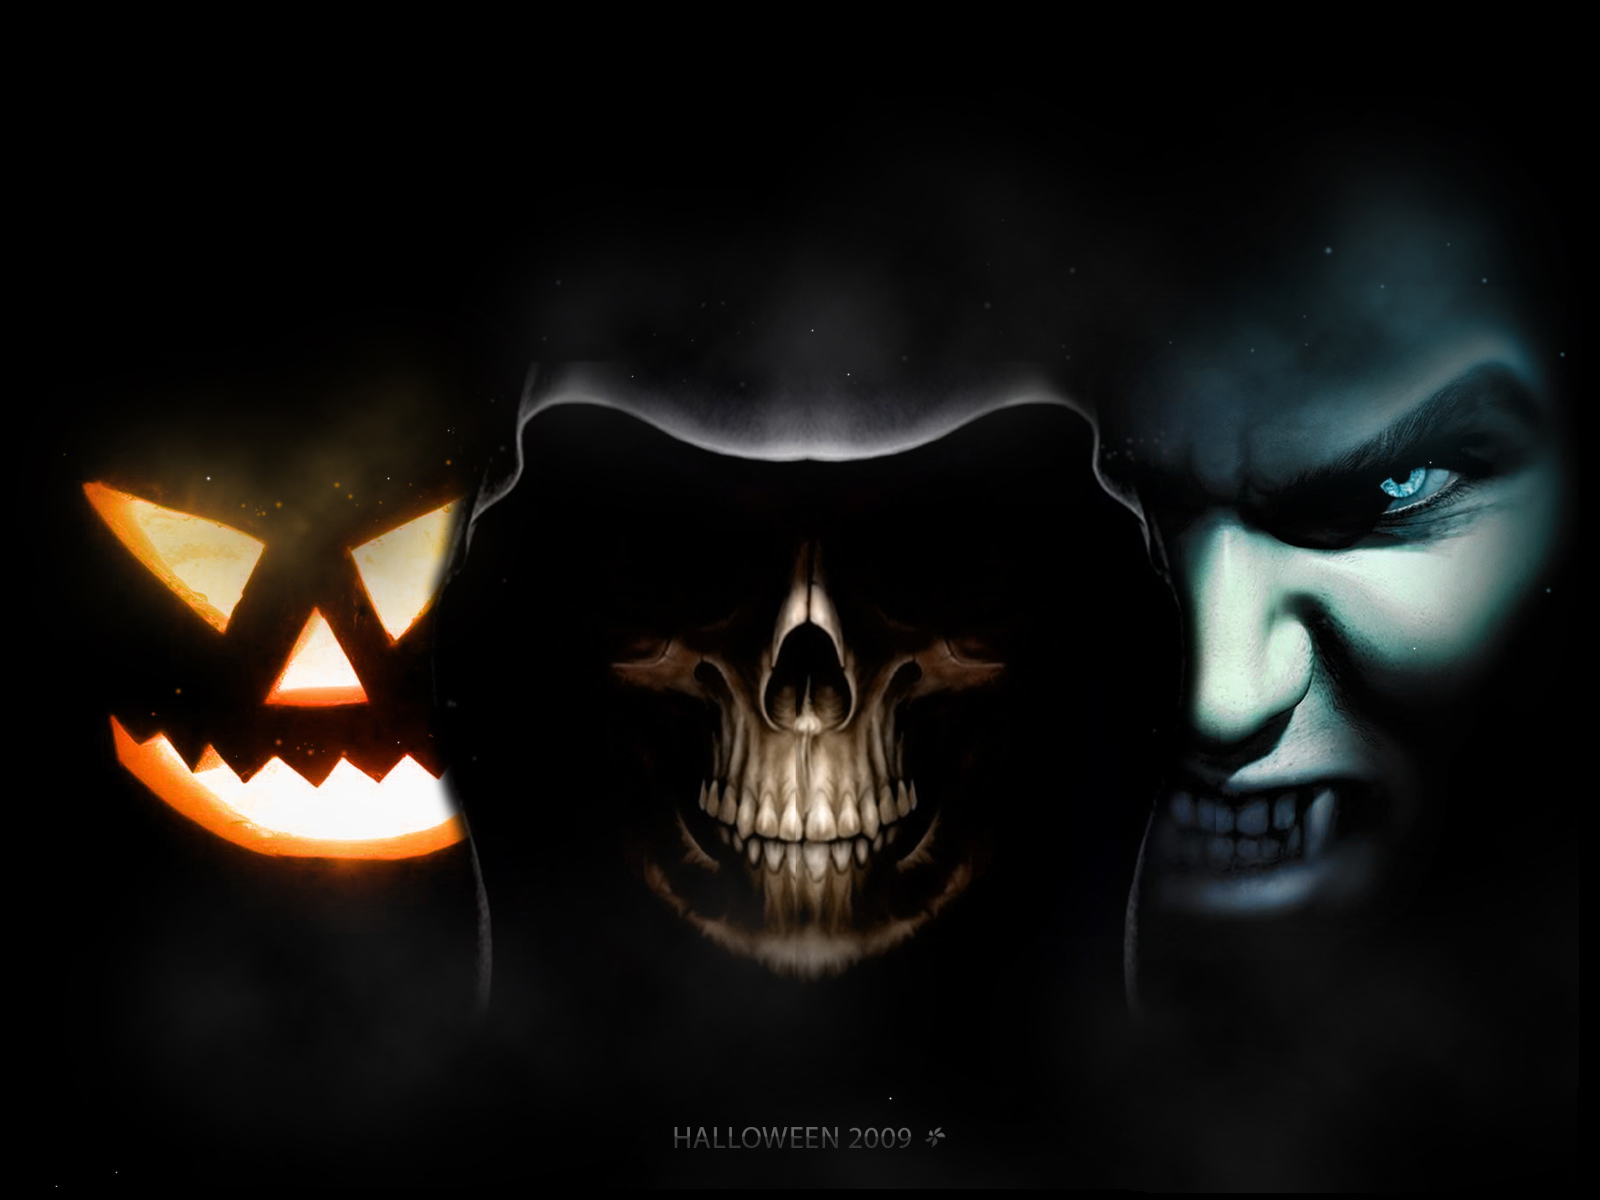 Cool Halloween Wallpaper funny High Definition Wallpapers Widescreen 1600x1200